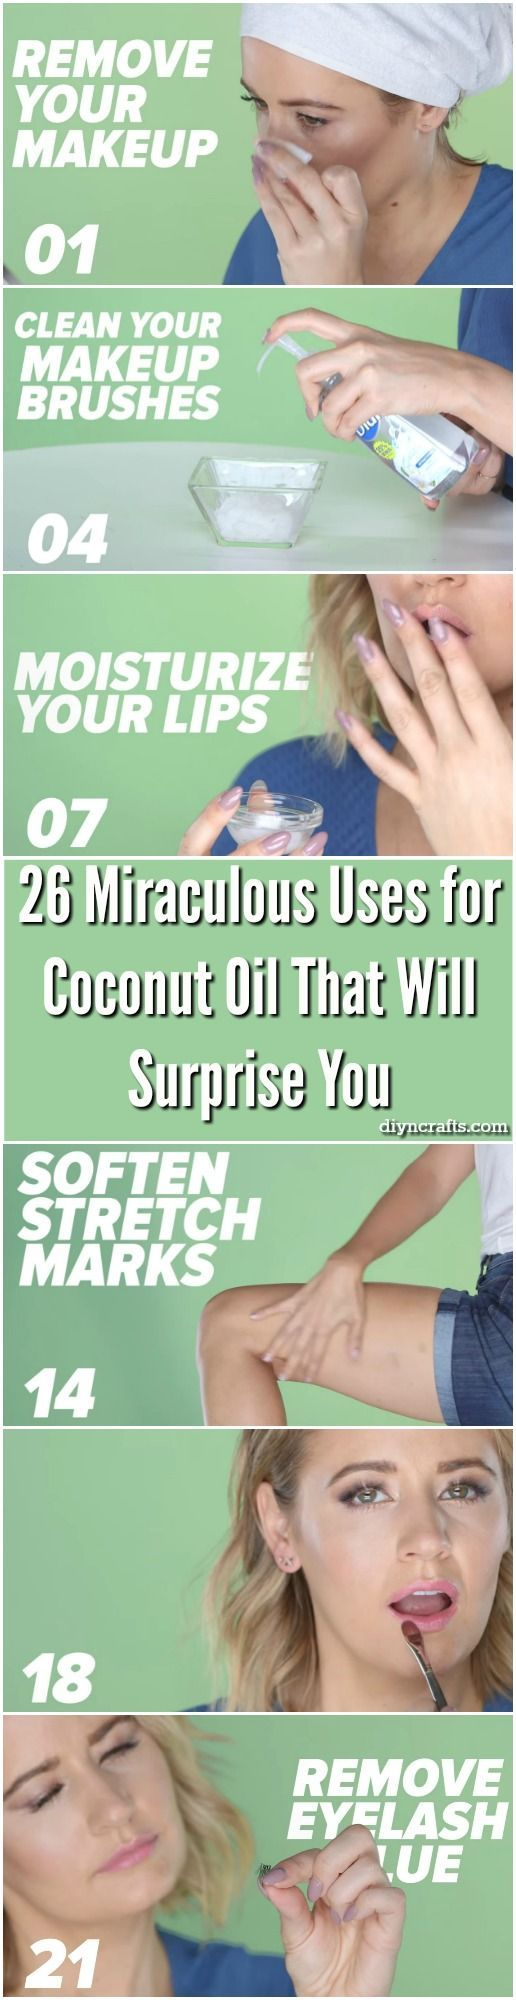 26 Miraculous Uses for Coconut Oil That Will Surprise You - A jar of coconut oil is one of the best investments you can make. For just a few dollars, you get a jar of oil which you can do literally hundreds of different things with. It is excellent for cooking, hygiene, personal health, household cleaning, and so much more. via /vanessacrafting/